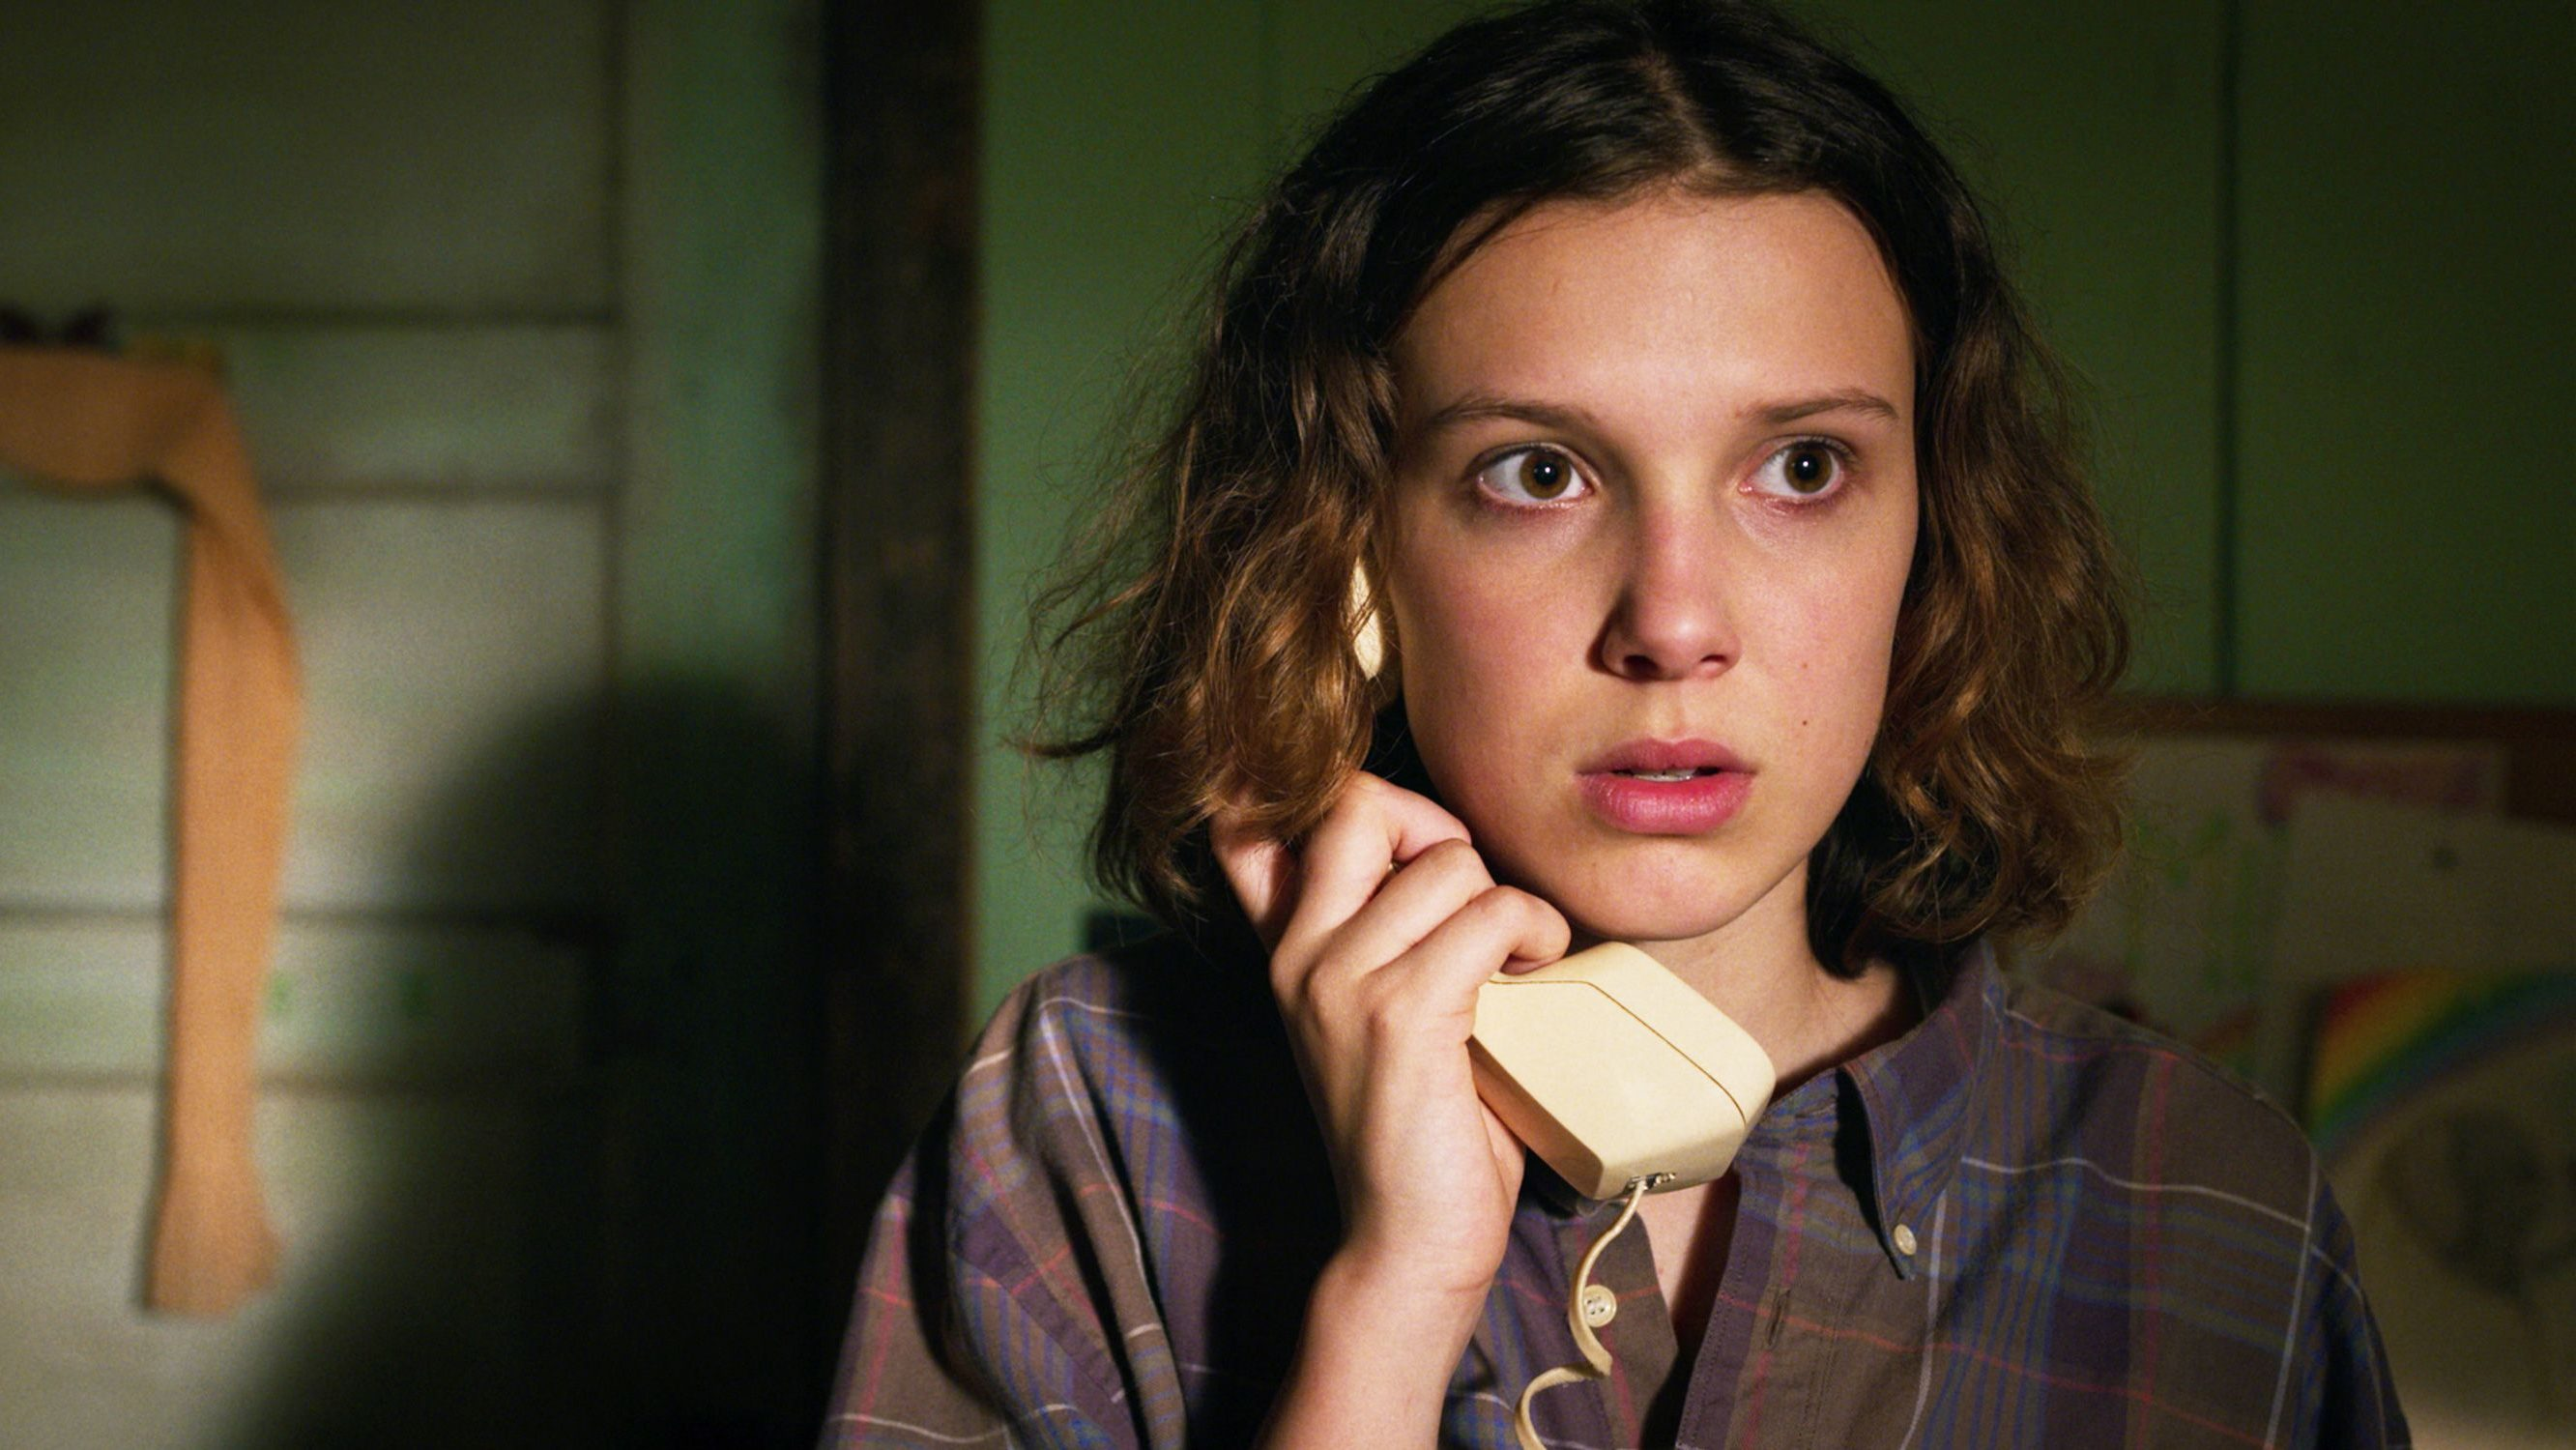 https://cinemaplanet.pt/wp-content/uploads/2019/08/cropped-stranger-things-millie.jpg